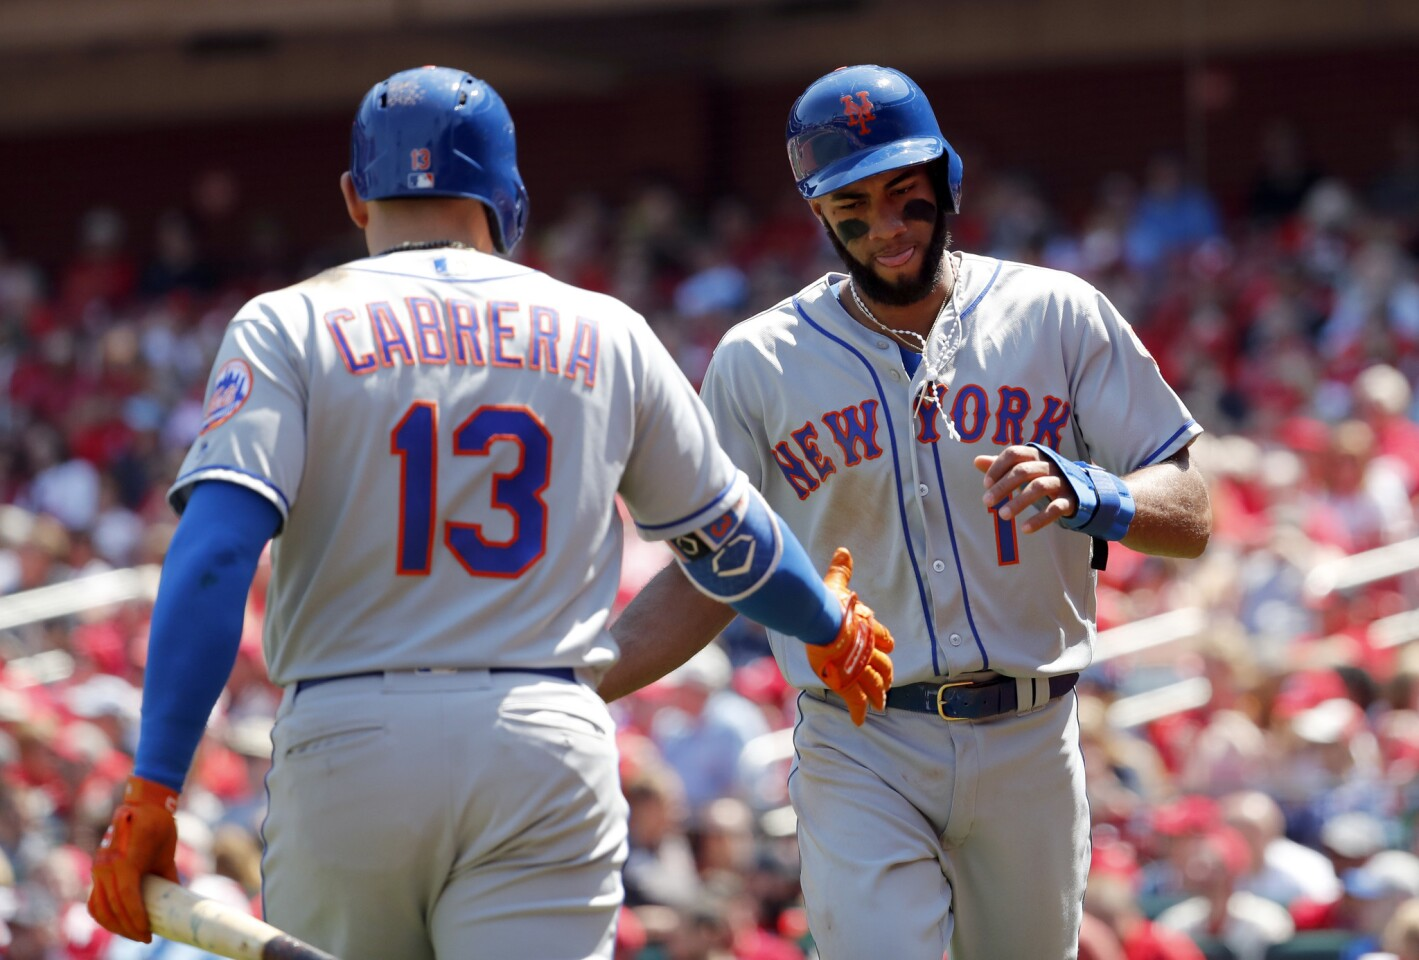 New York Mets' Amed Rosario, right, is congratulated by teammate Asdrubal Cabrera after scoring during the seventh inning of a baseball game against the St. Louis Cardinals Thursday, April 26, 2018, in St. Louis. (AP Photo/Jeff Roberson)